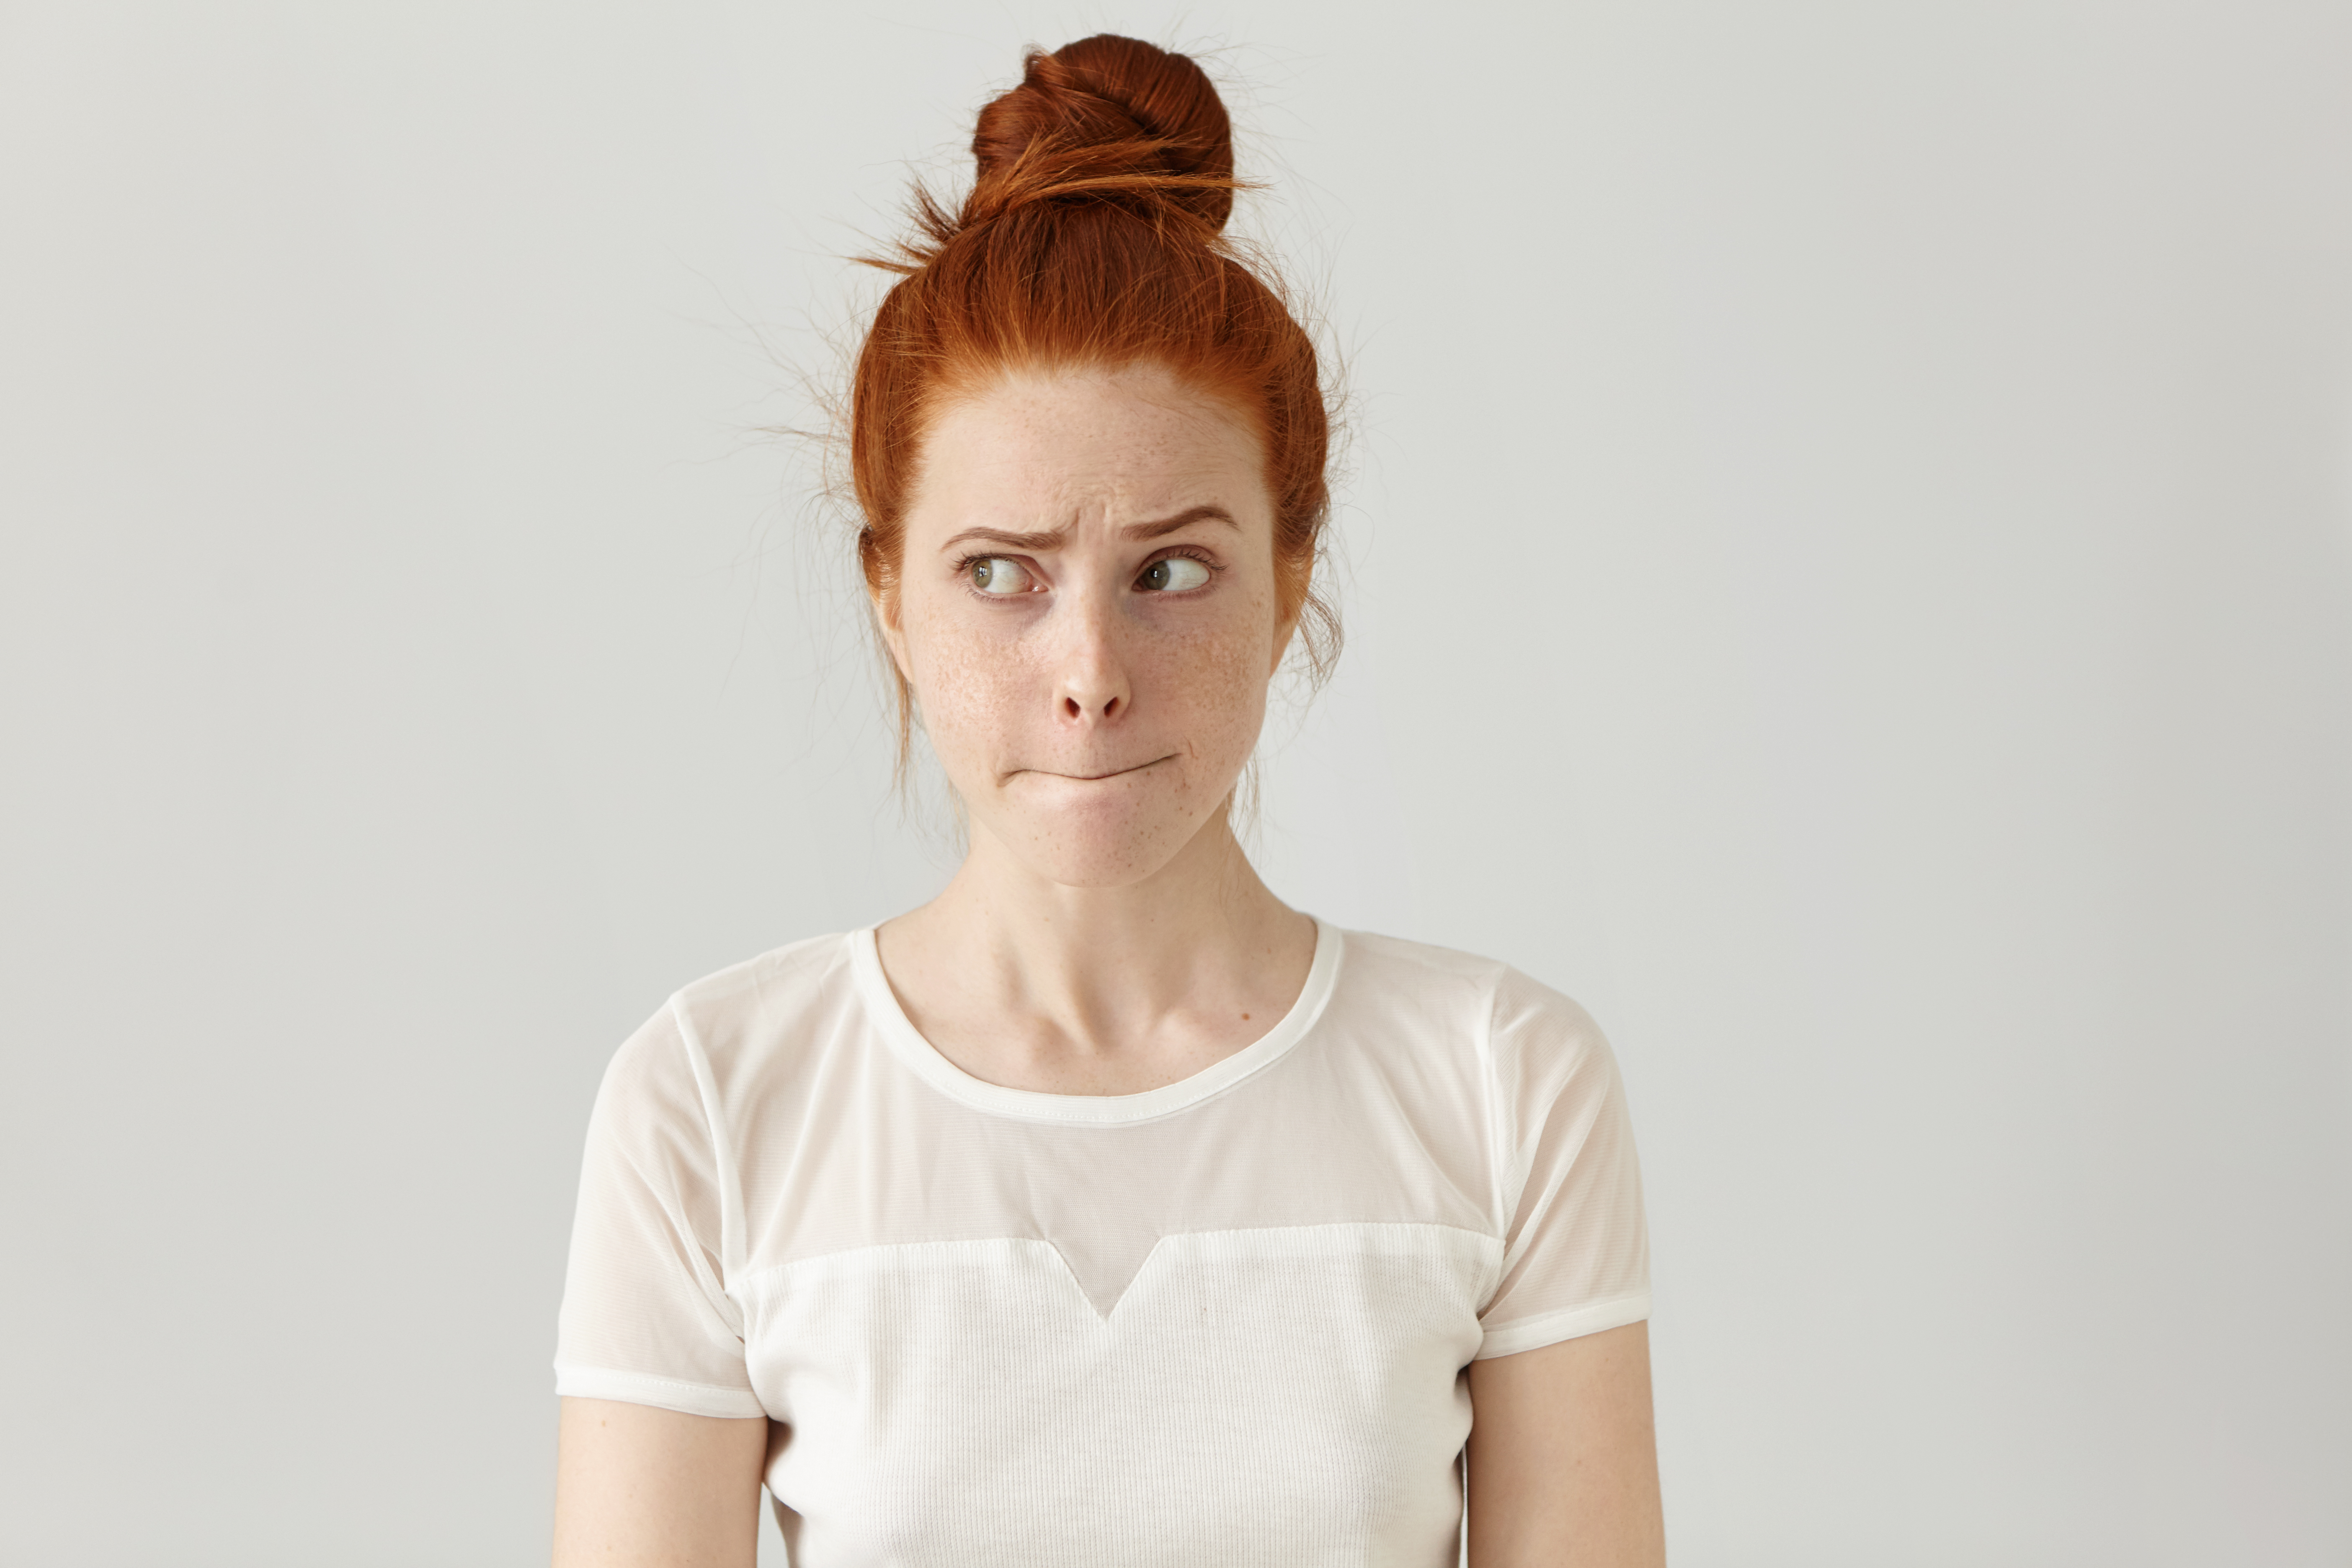 redhead with hair in bun